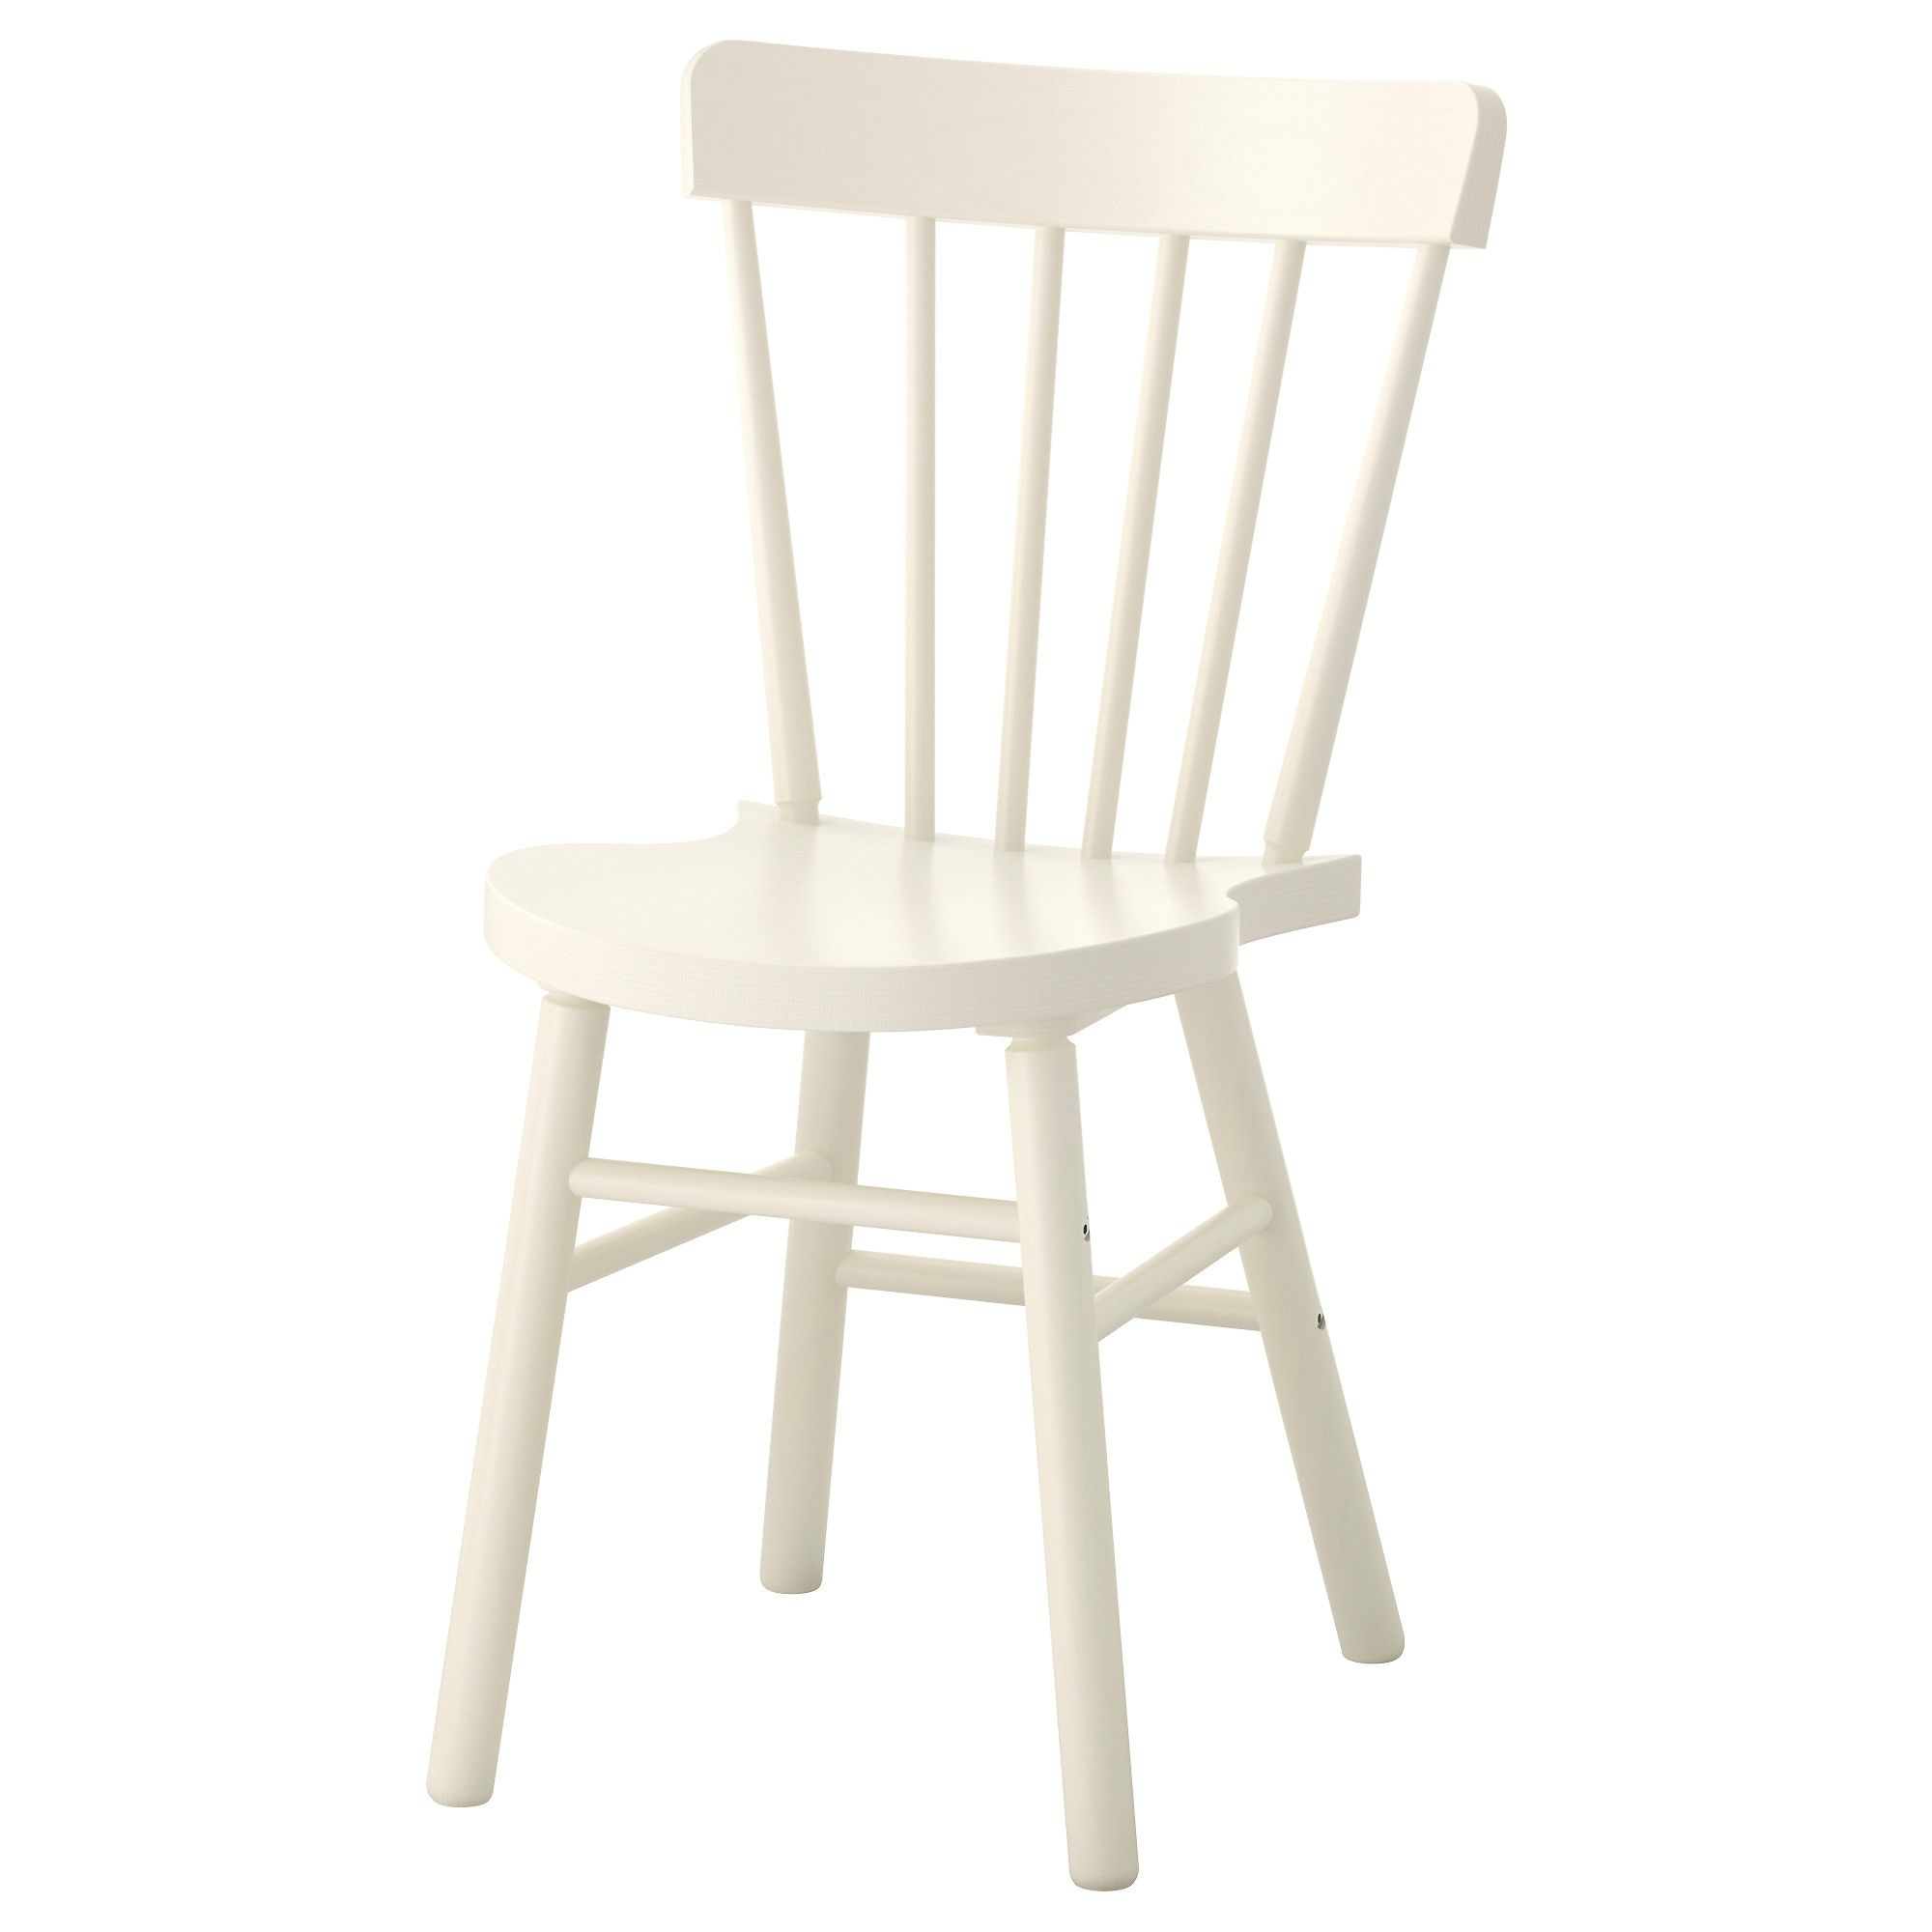 Awesome IKEA NORRARYD Chair You Sit Comfortably Thanks To The Chairu0027s Shaped Back  And Seat.